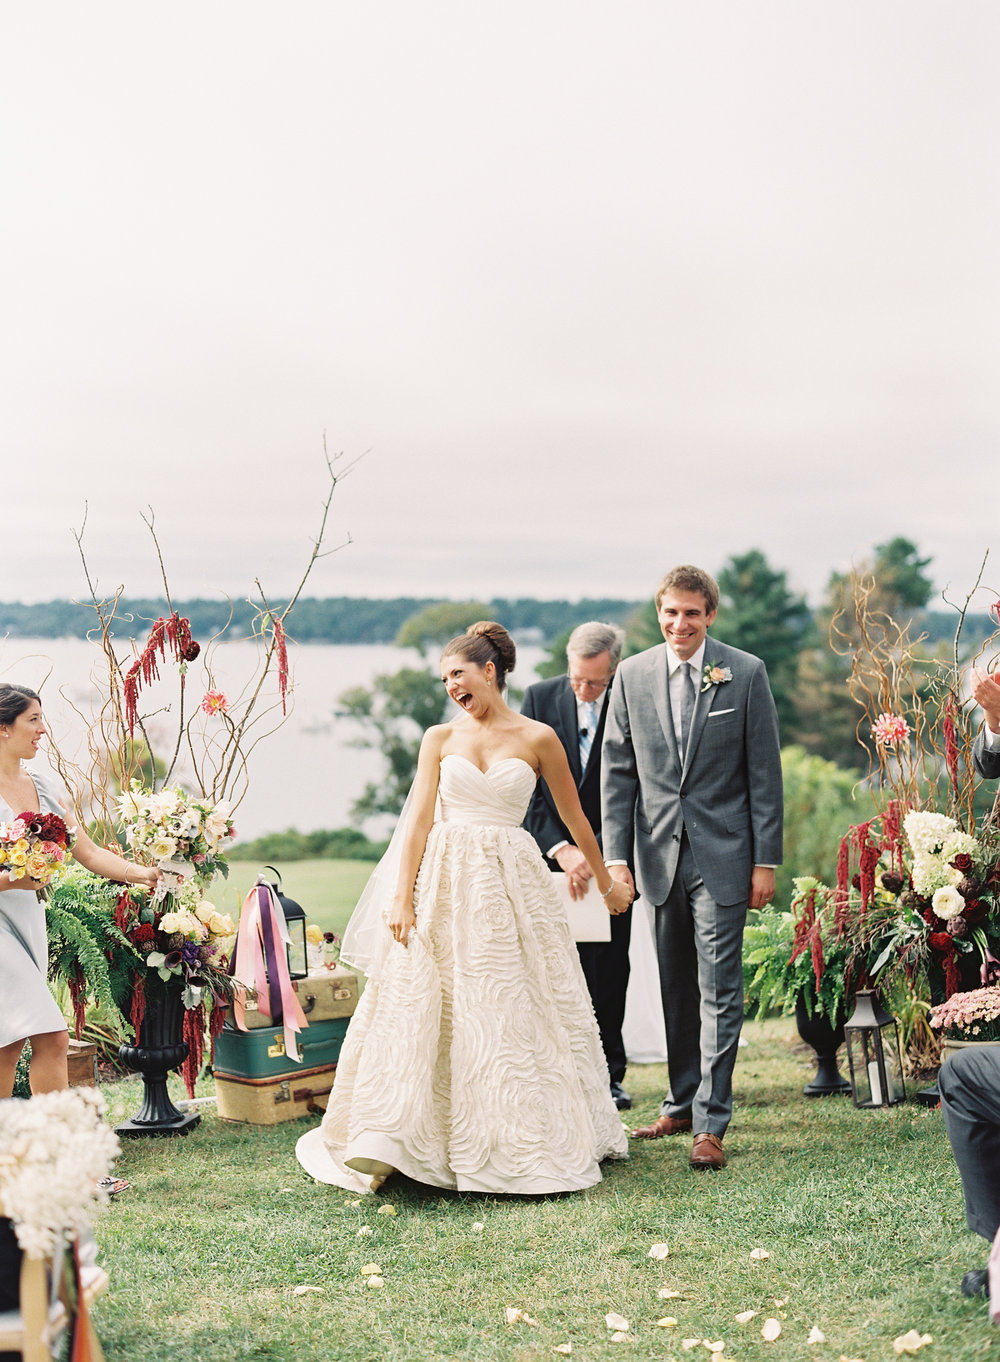 chebeague_island_inn_wedding_gabe_aceves014.JPG